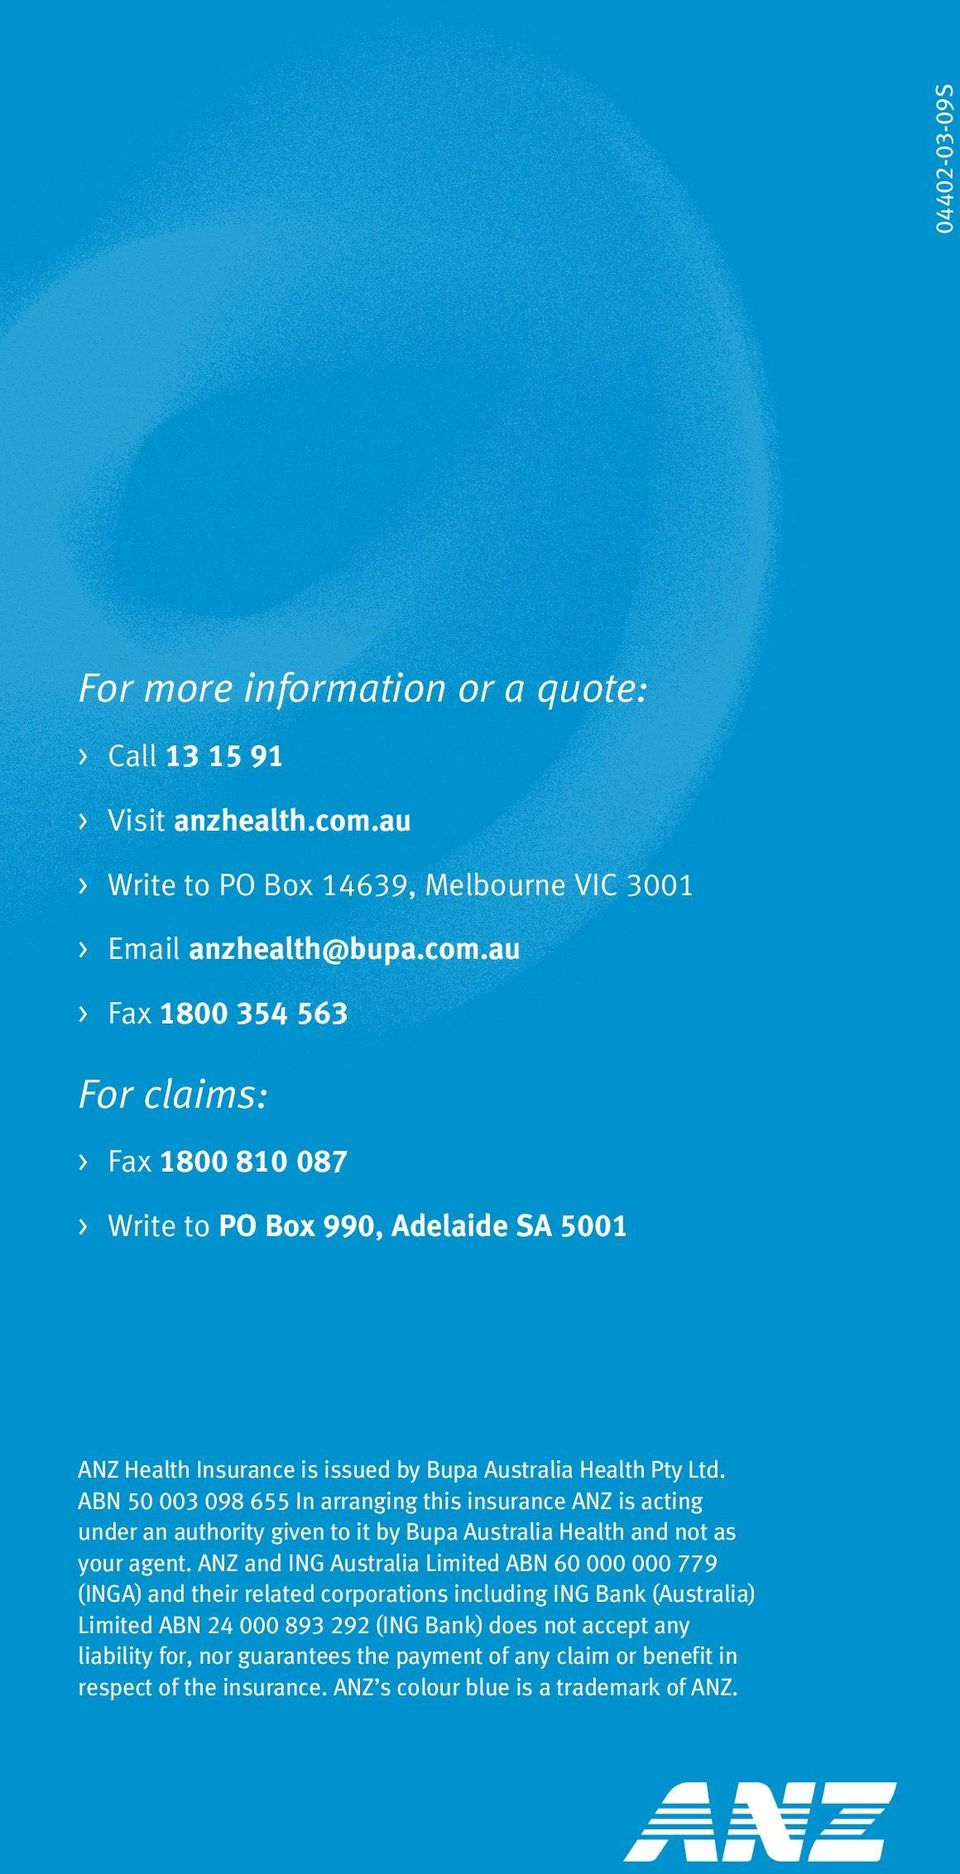 au > Fax 1800 354 563 For claims: > Fax 1800 810 087 > Write to PO Box 990, Adelaide SA 5001 ANZ Health Insurance is issued by Bupa Australia Health Pty Ltd.